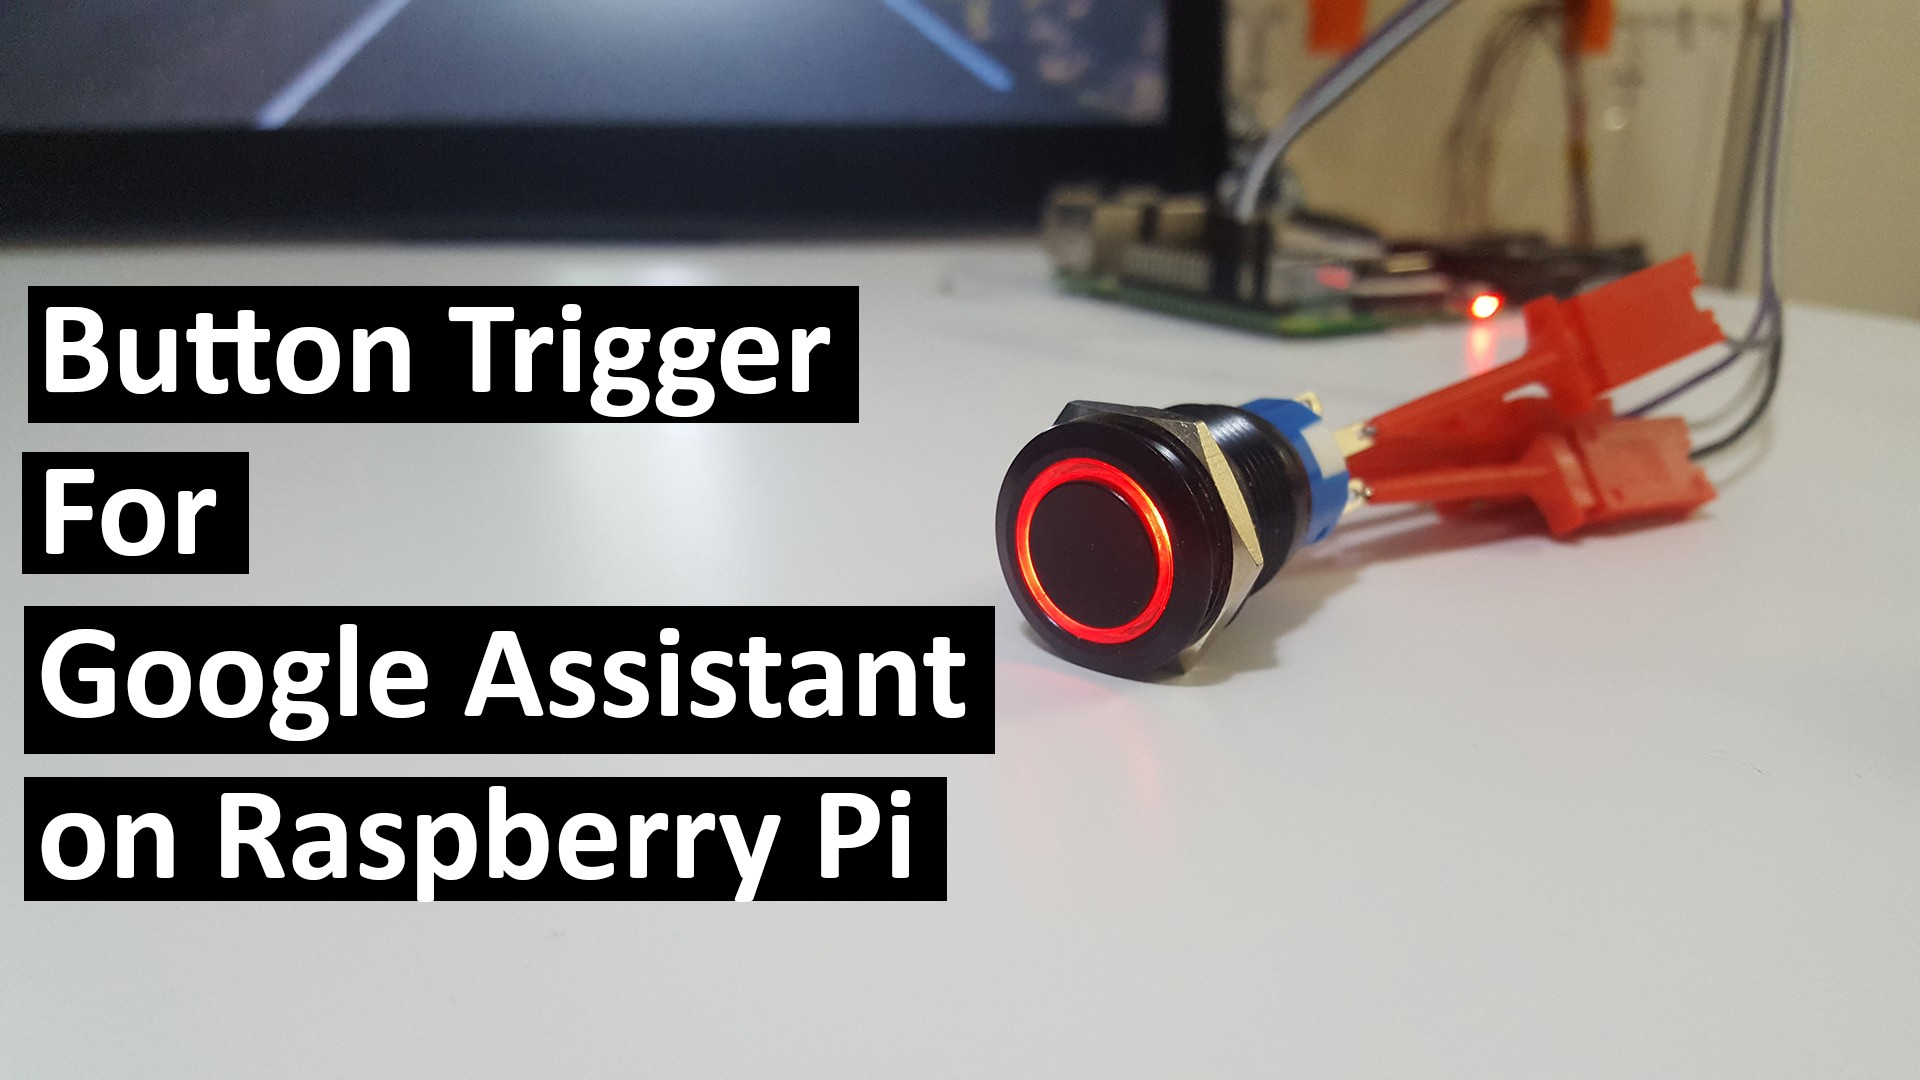 Button Trigger for Google Assistant on Raspberry Pi